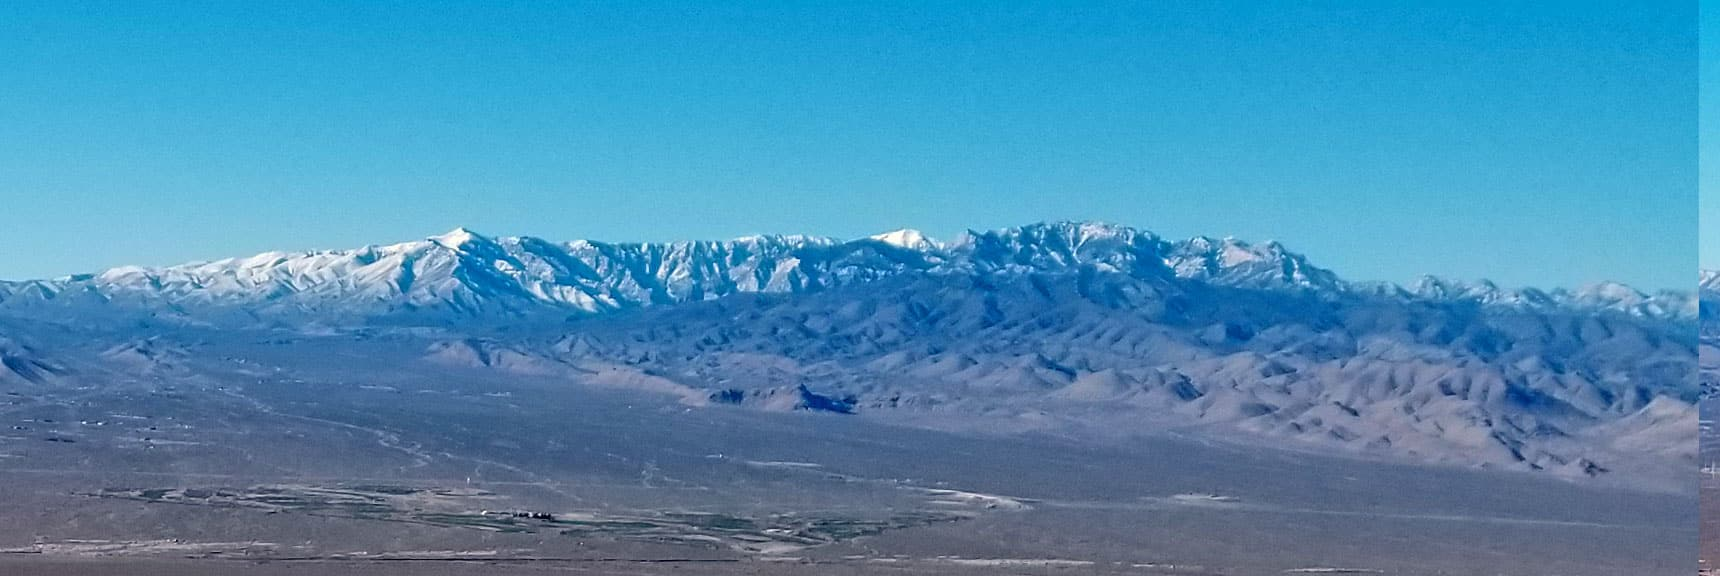 Mt Charleston Wilderness from SW Approach to Gass Peak About 4000ft